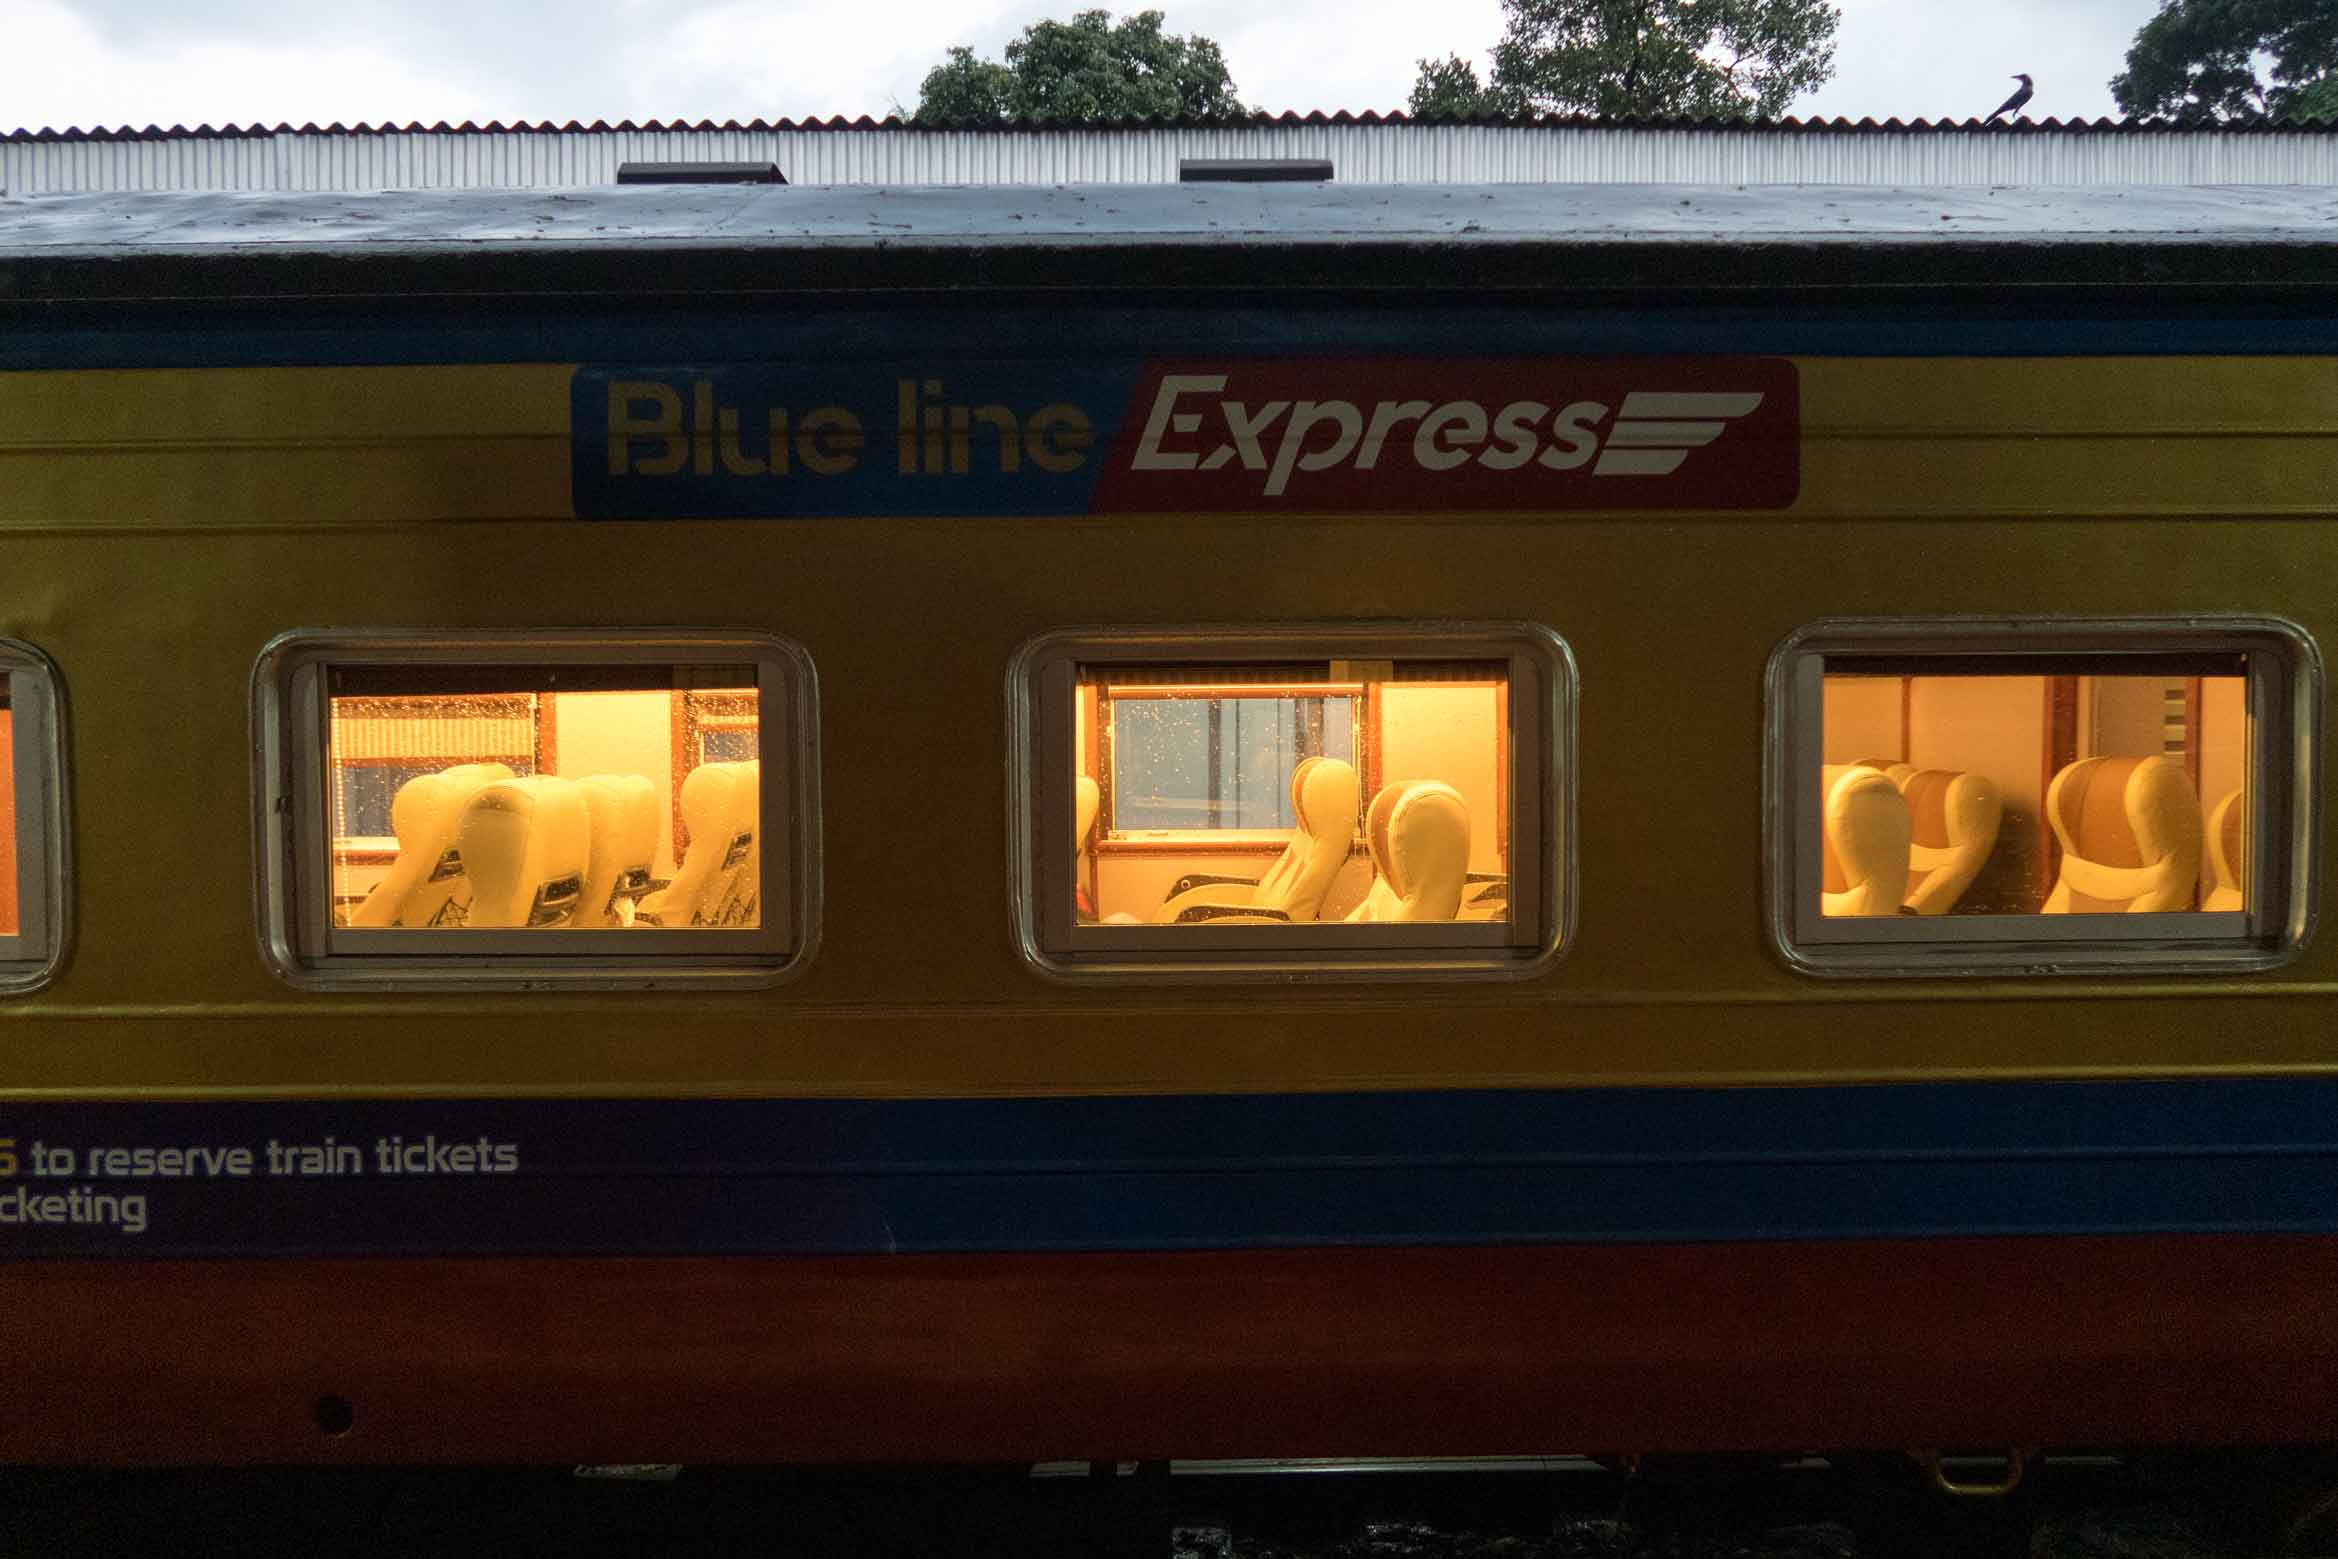 Blueline Express Train Carriage In Kandy